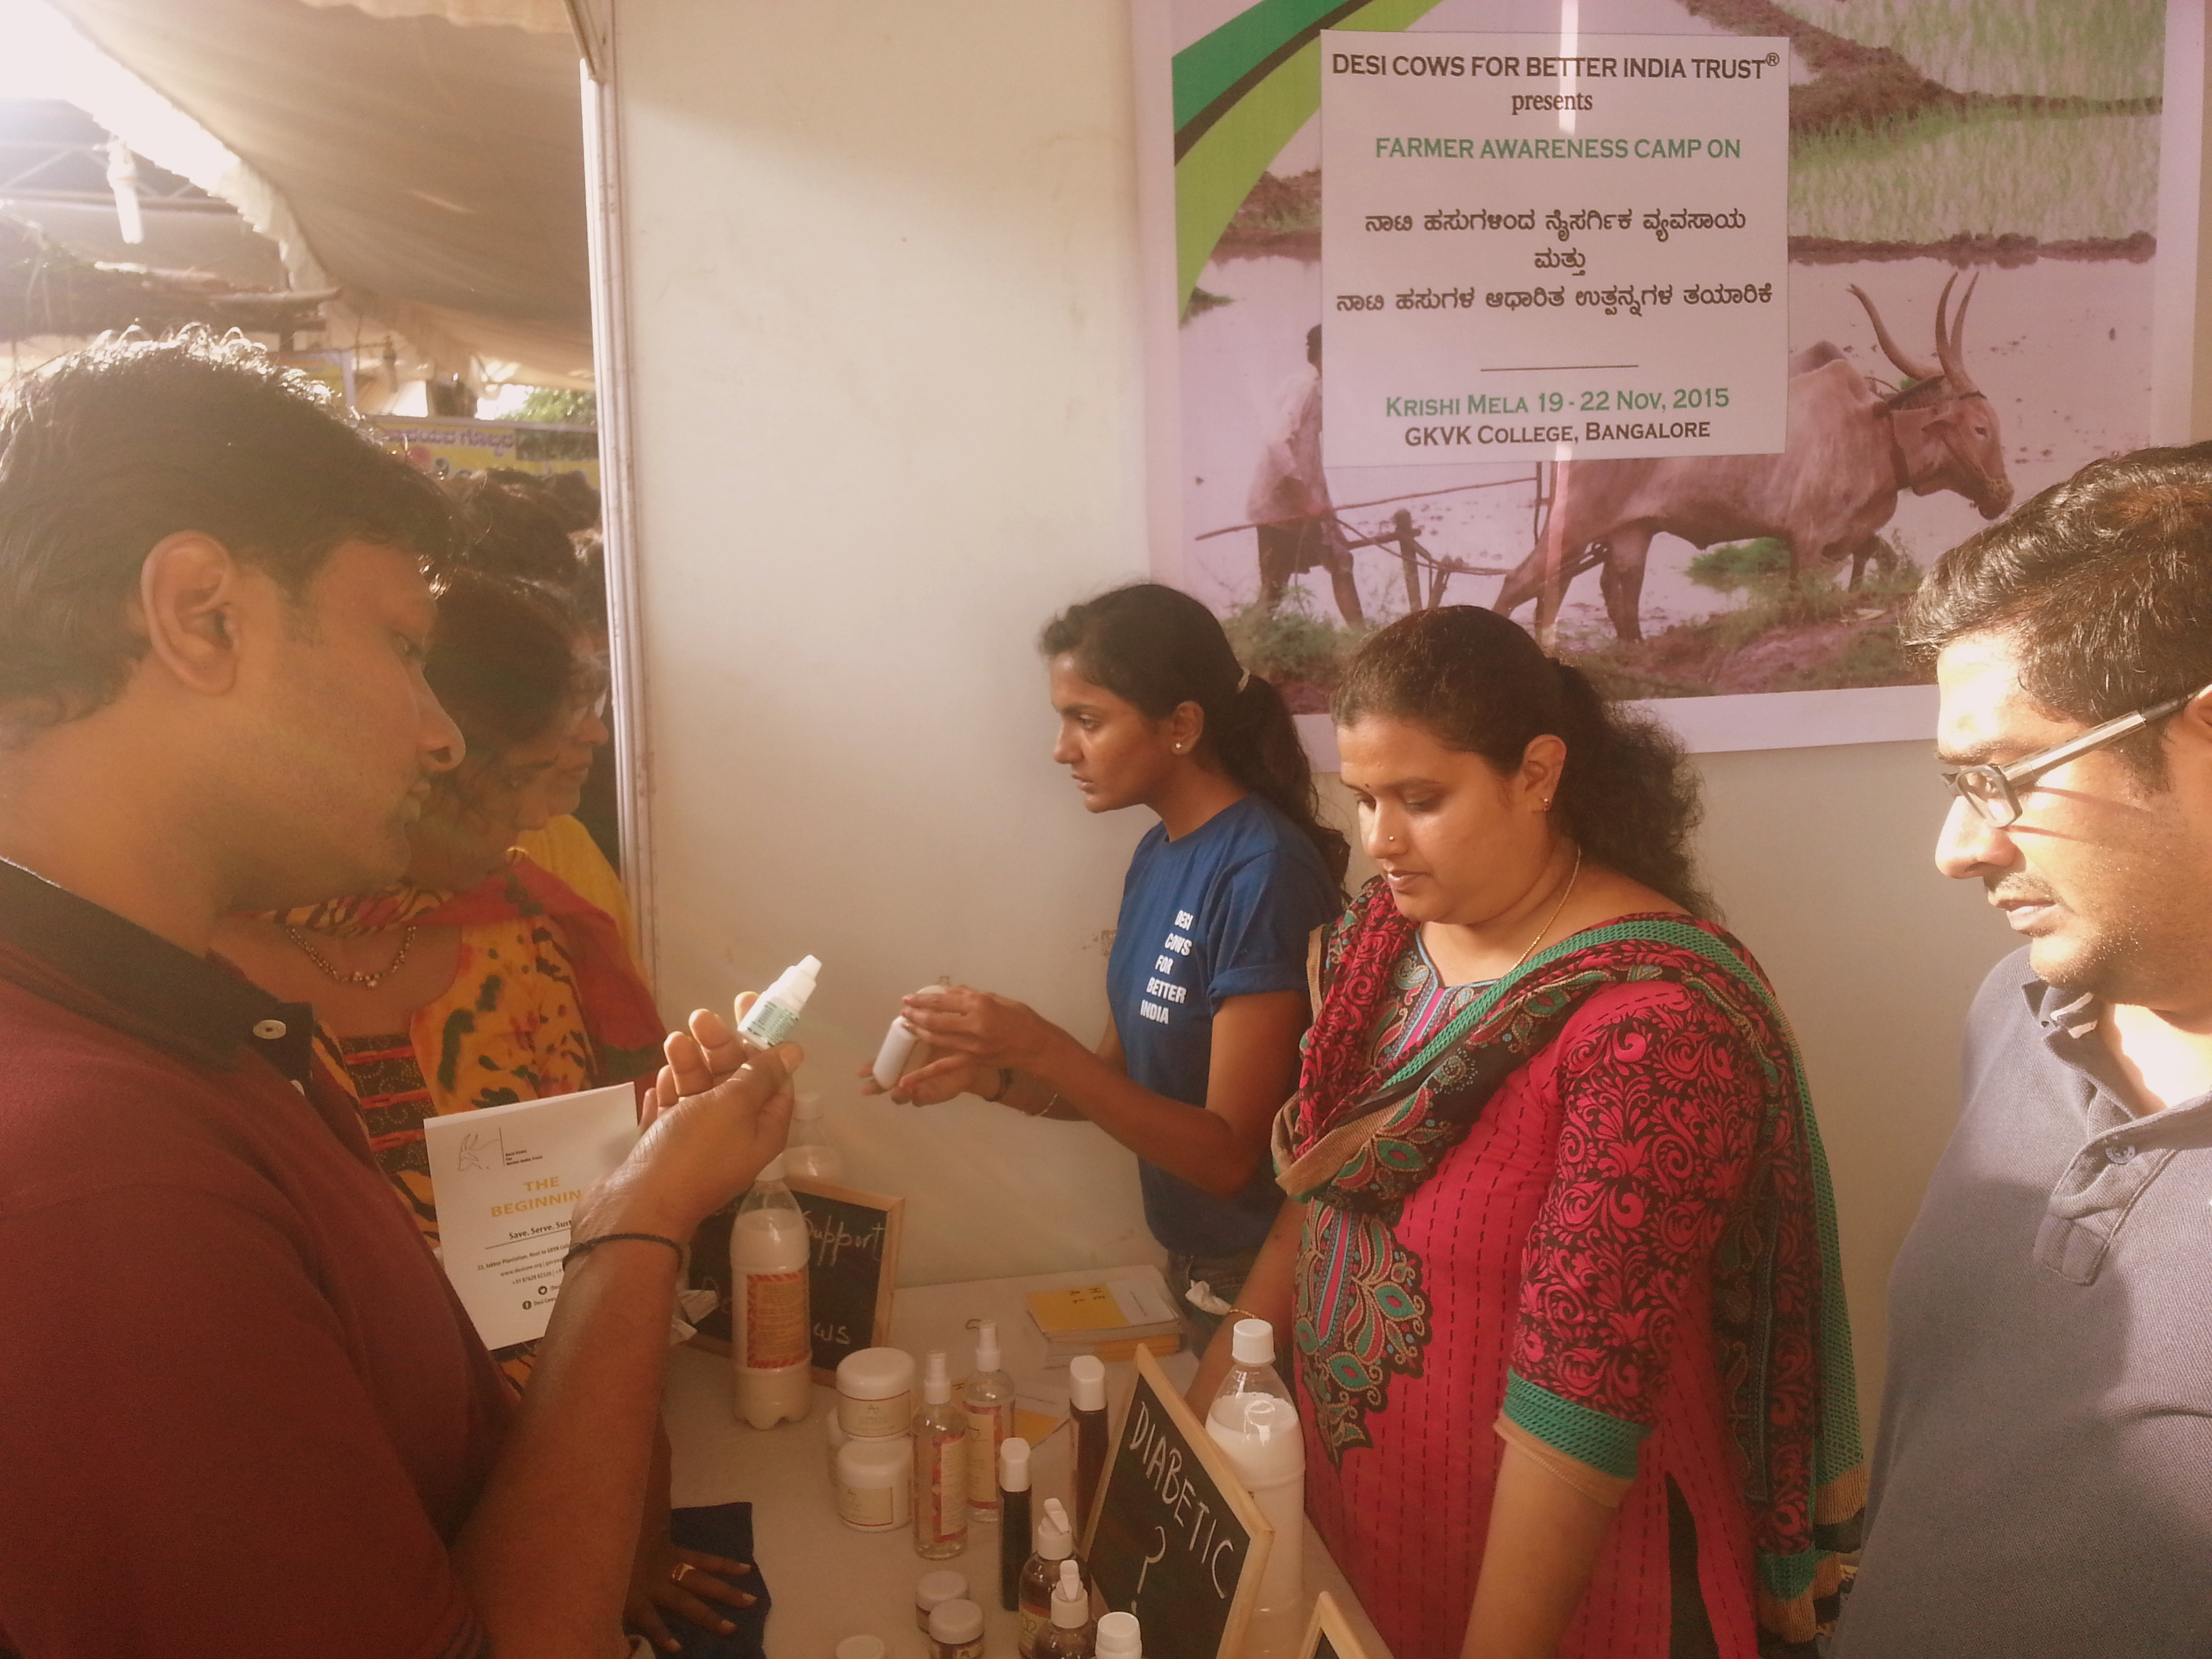 Volunteers interacting with visitors